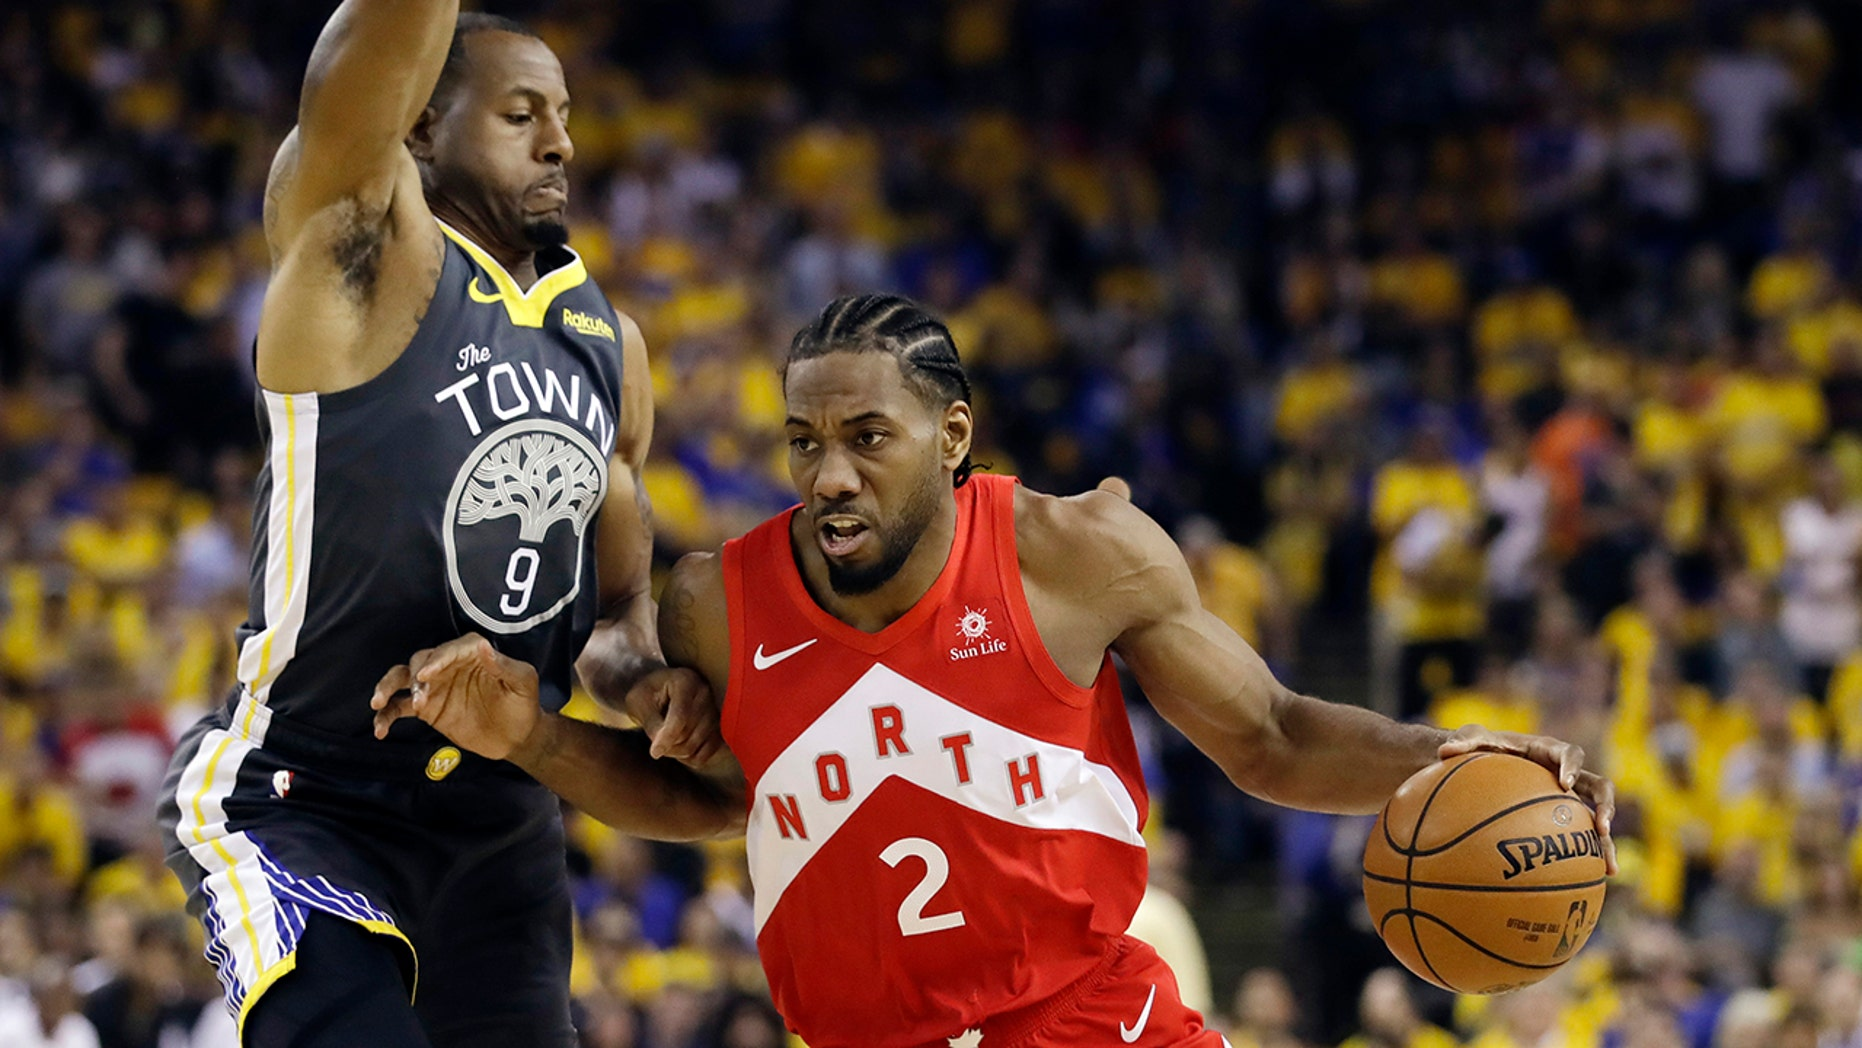 Westlake Legal Group NBA-Kawhi-Leonard17 Kawhi Leonard, Paul George officially join LA Clippers fox-news/sports/nba/washington-wizards fox-news/sports/nba/portland-trail-blazers fox-news/sports/nba/philadelphia-76ers fox-news/sports/nba/los-angeles-clippers fox-news/sports/nba/golden-state-warriors fox-news/sports/nba fox-news/person/kawhi-leonard fnc/sports fnc Associated Press article 2c3f07e7-f328-5ee6-9d20-28d148085750